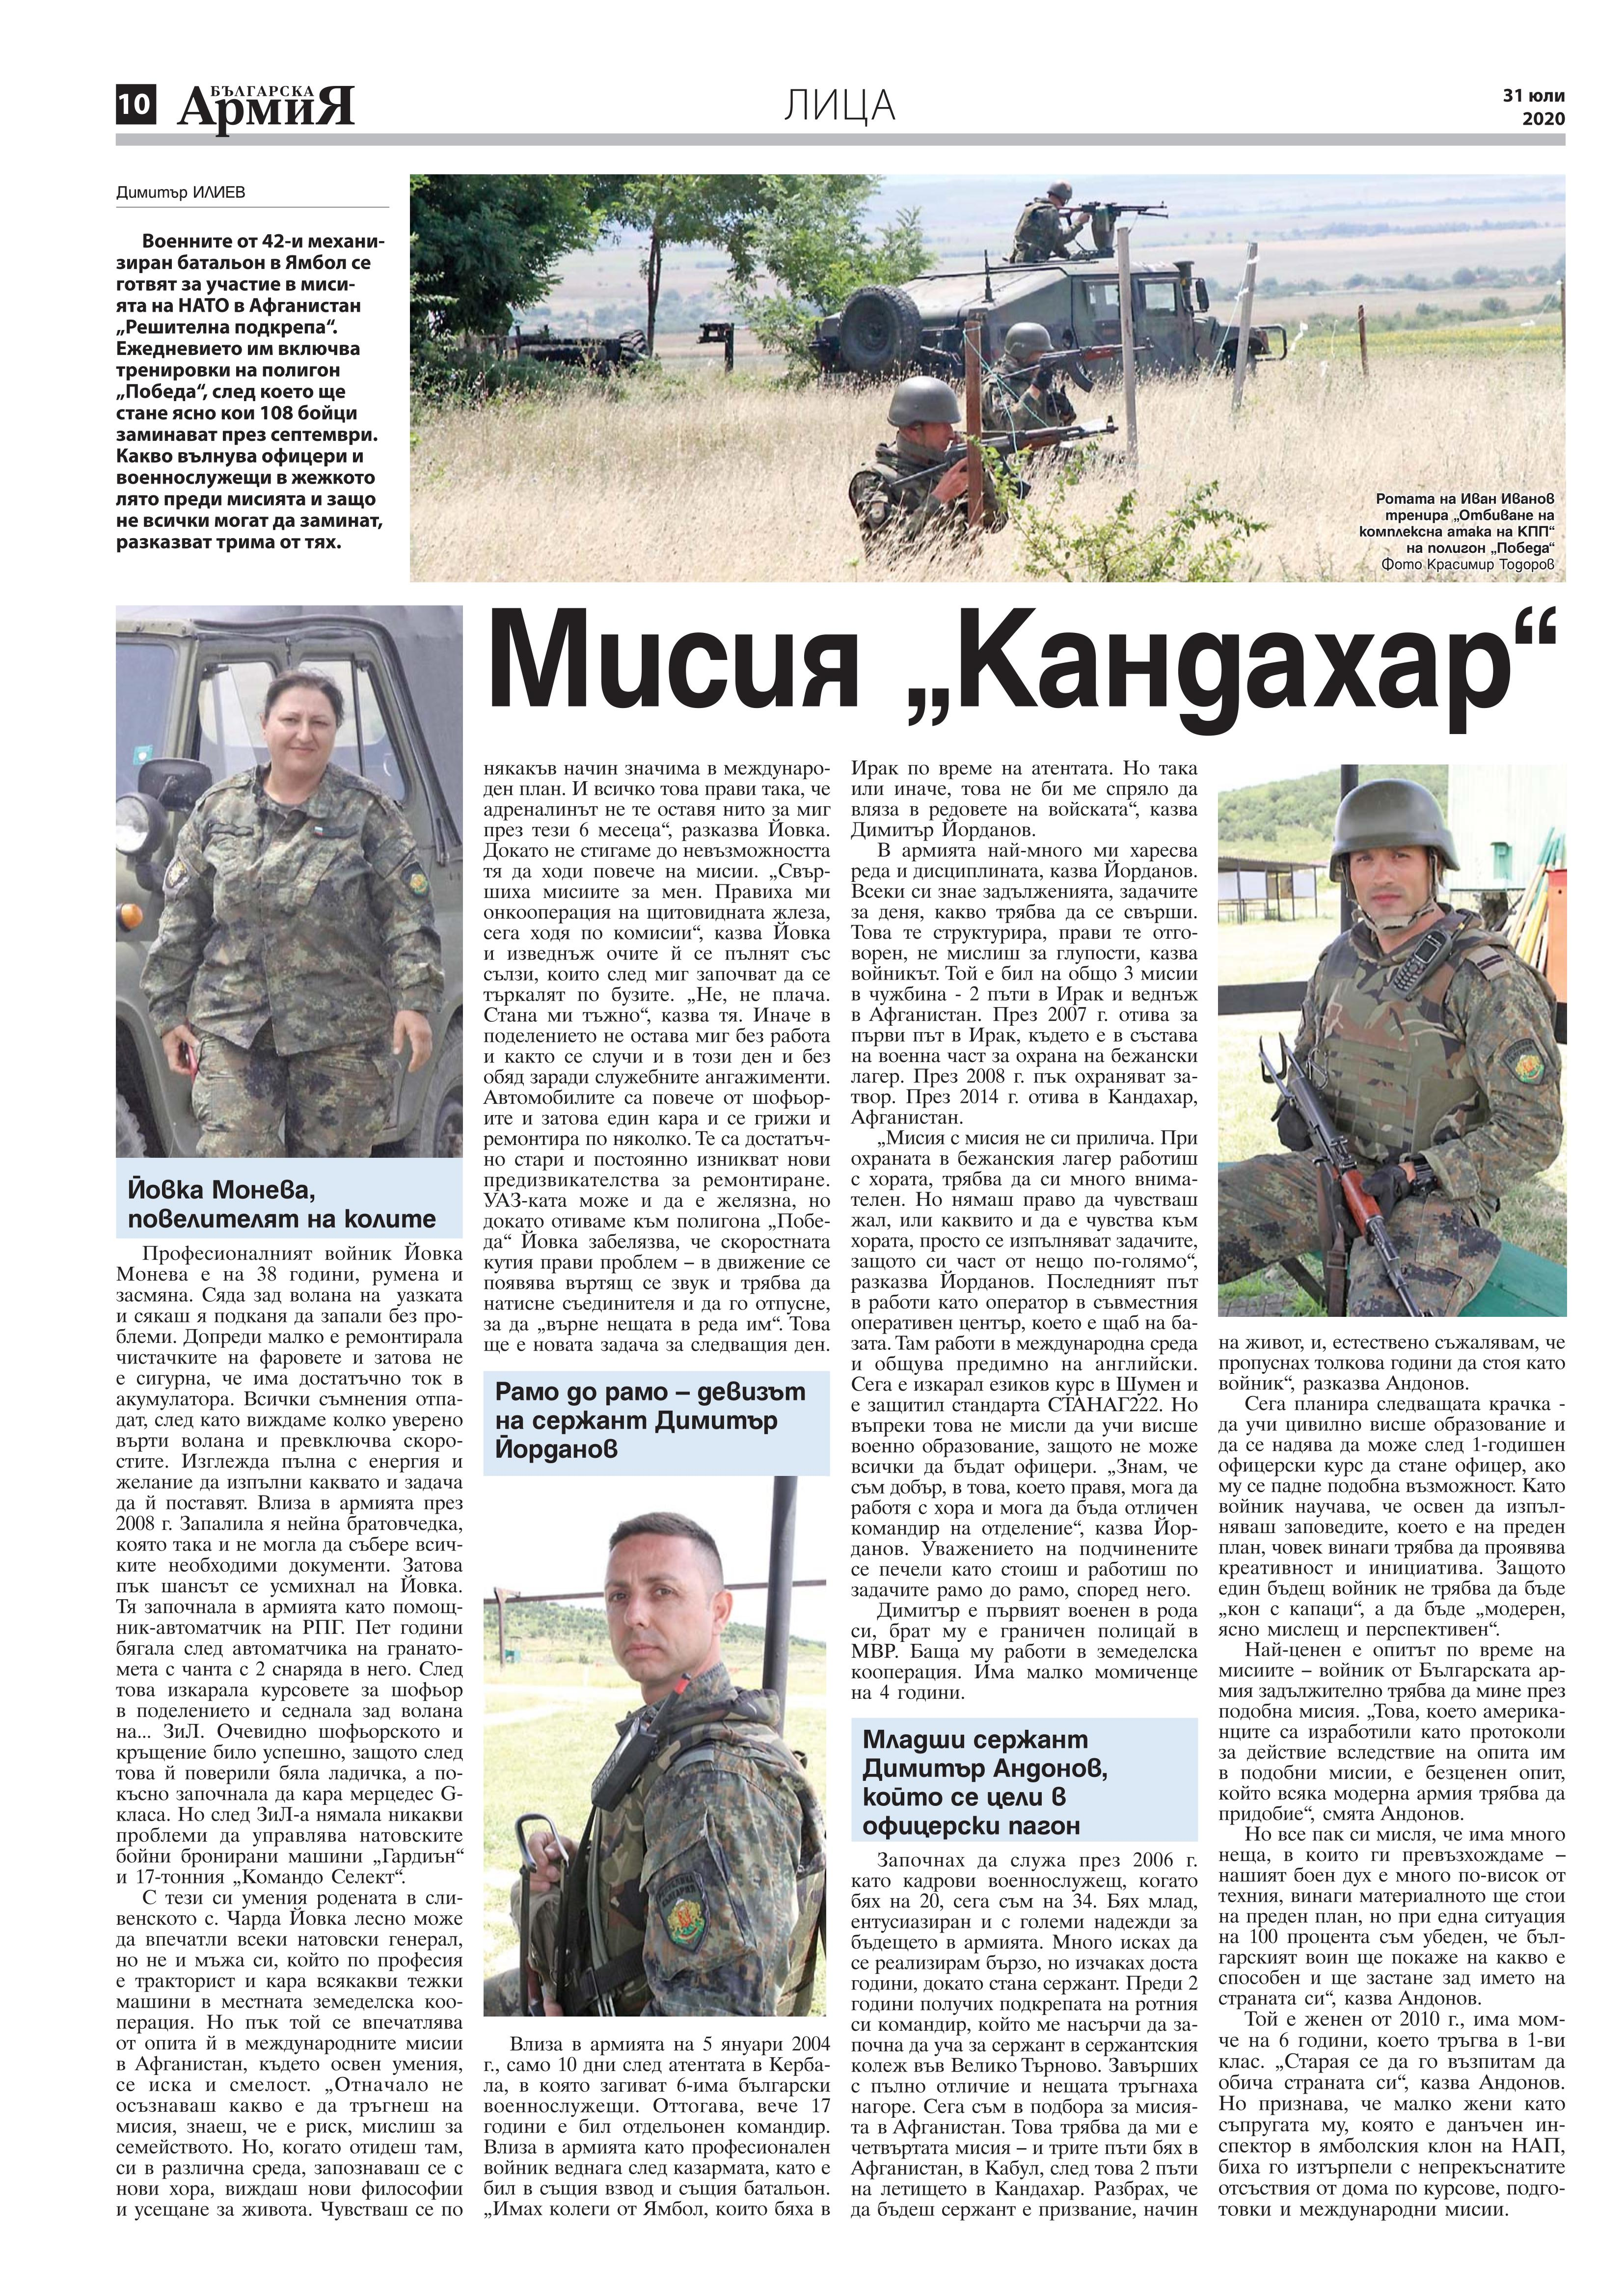 https://armymedia.bg/wp-content/uploads/2015/06/10.page1_-148.jpg